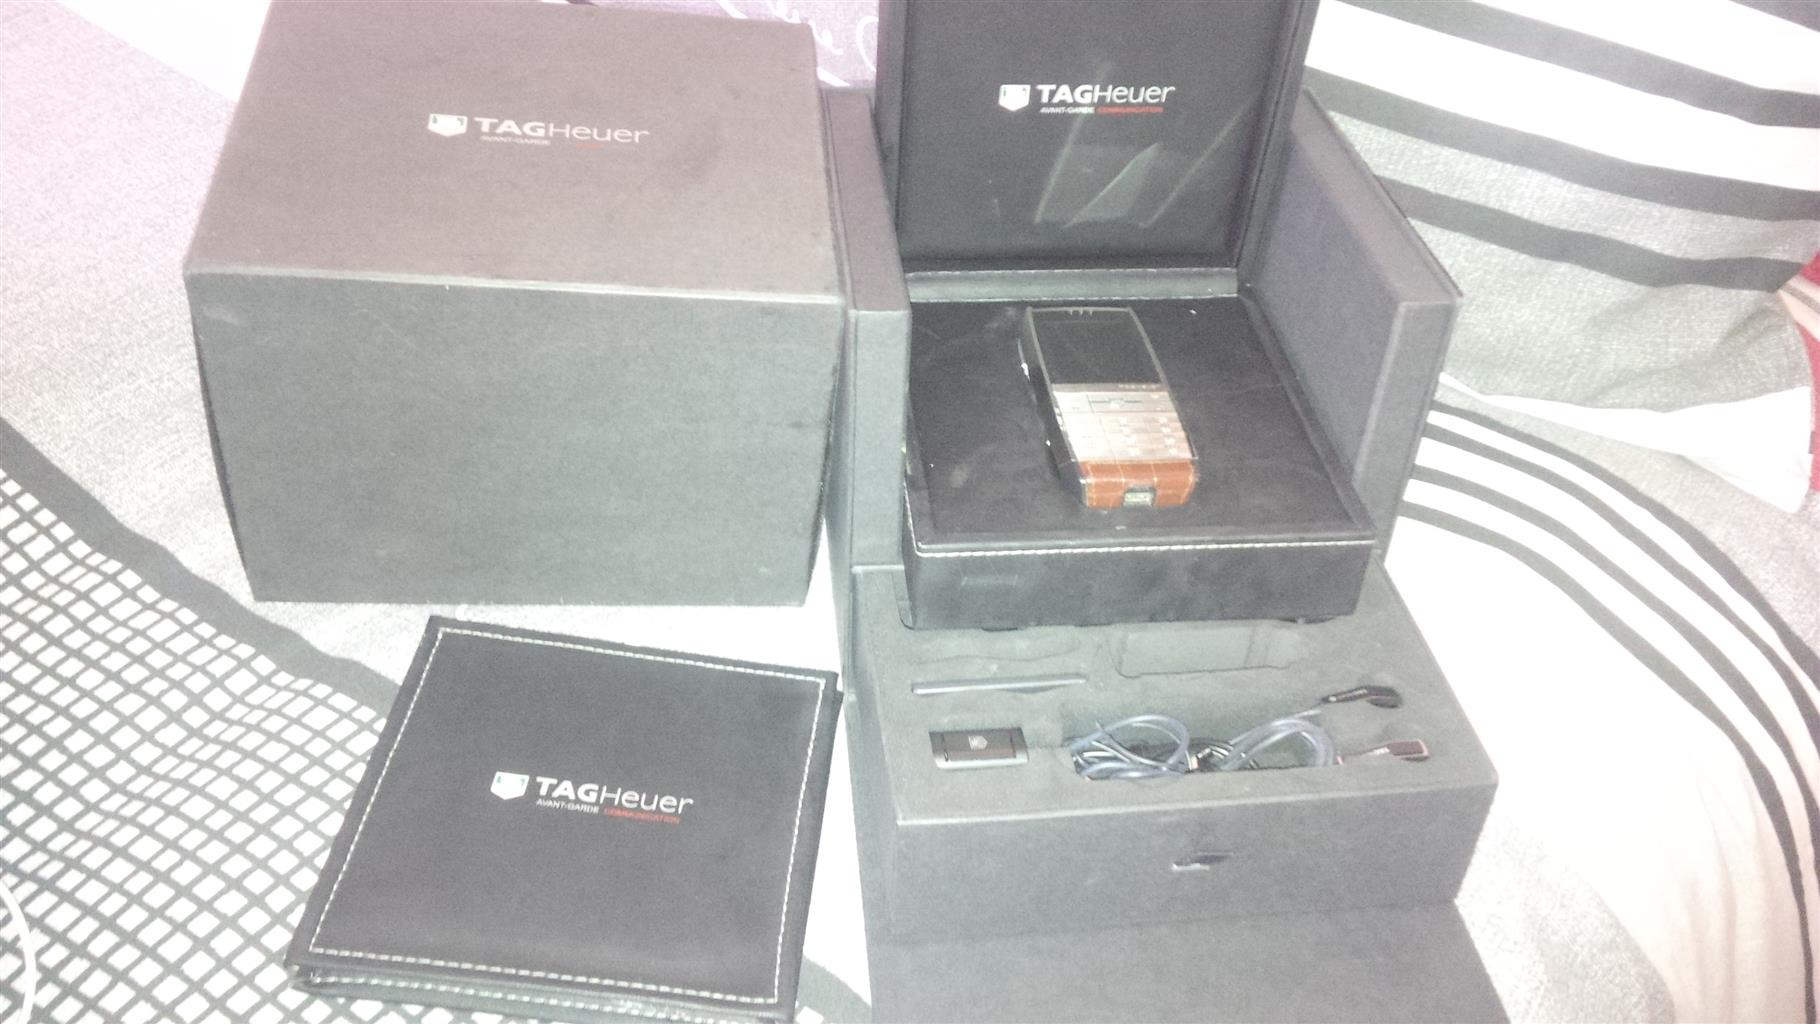 Tag heuer mobile phone